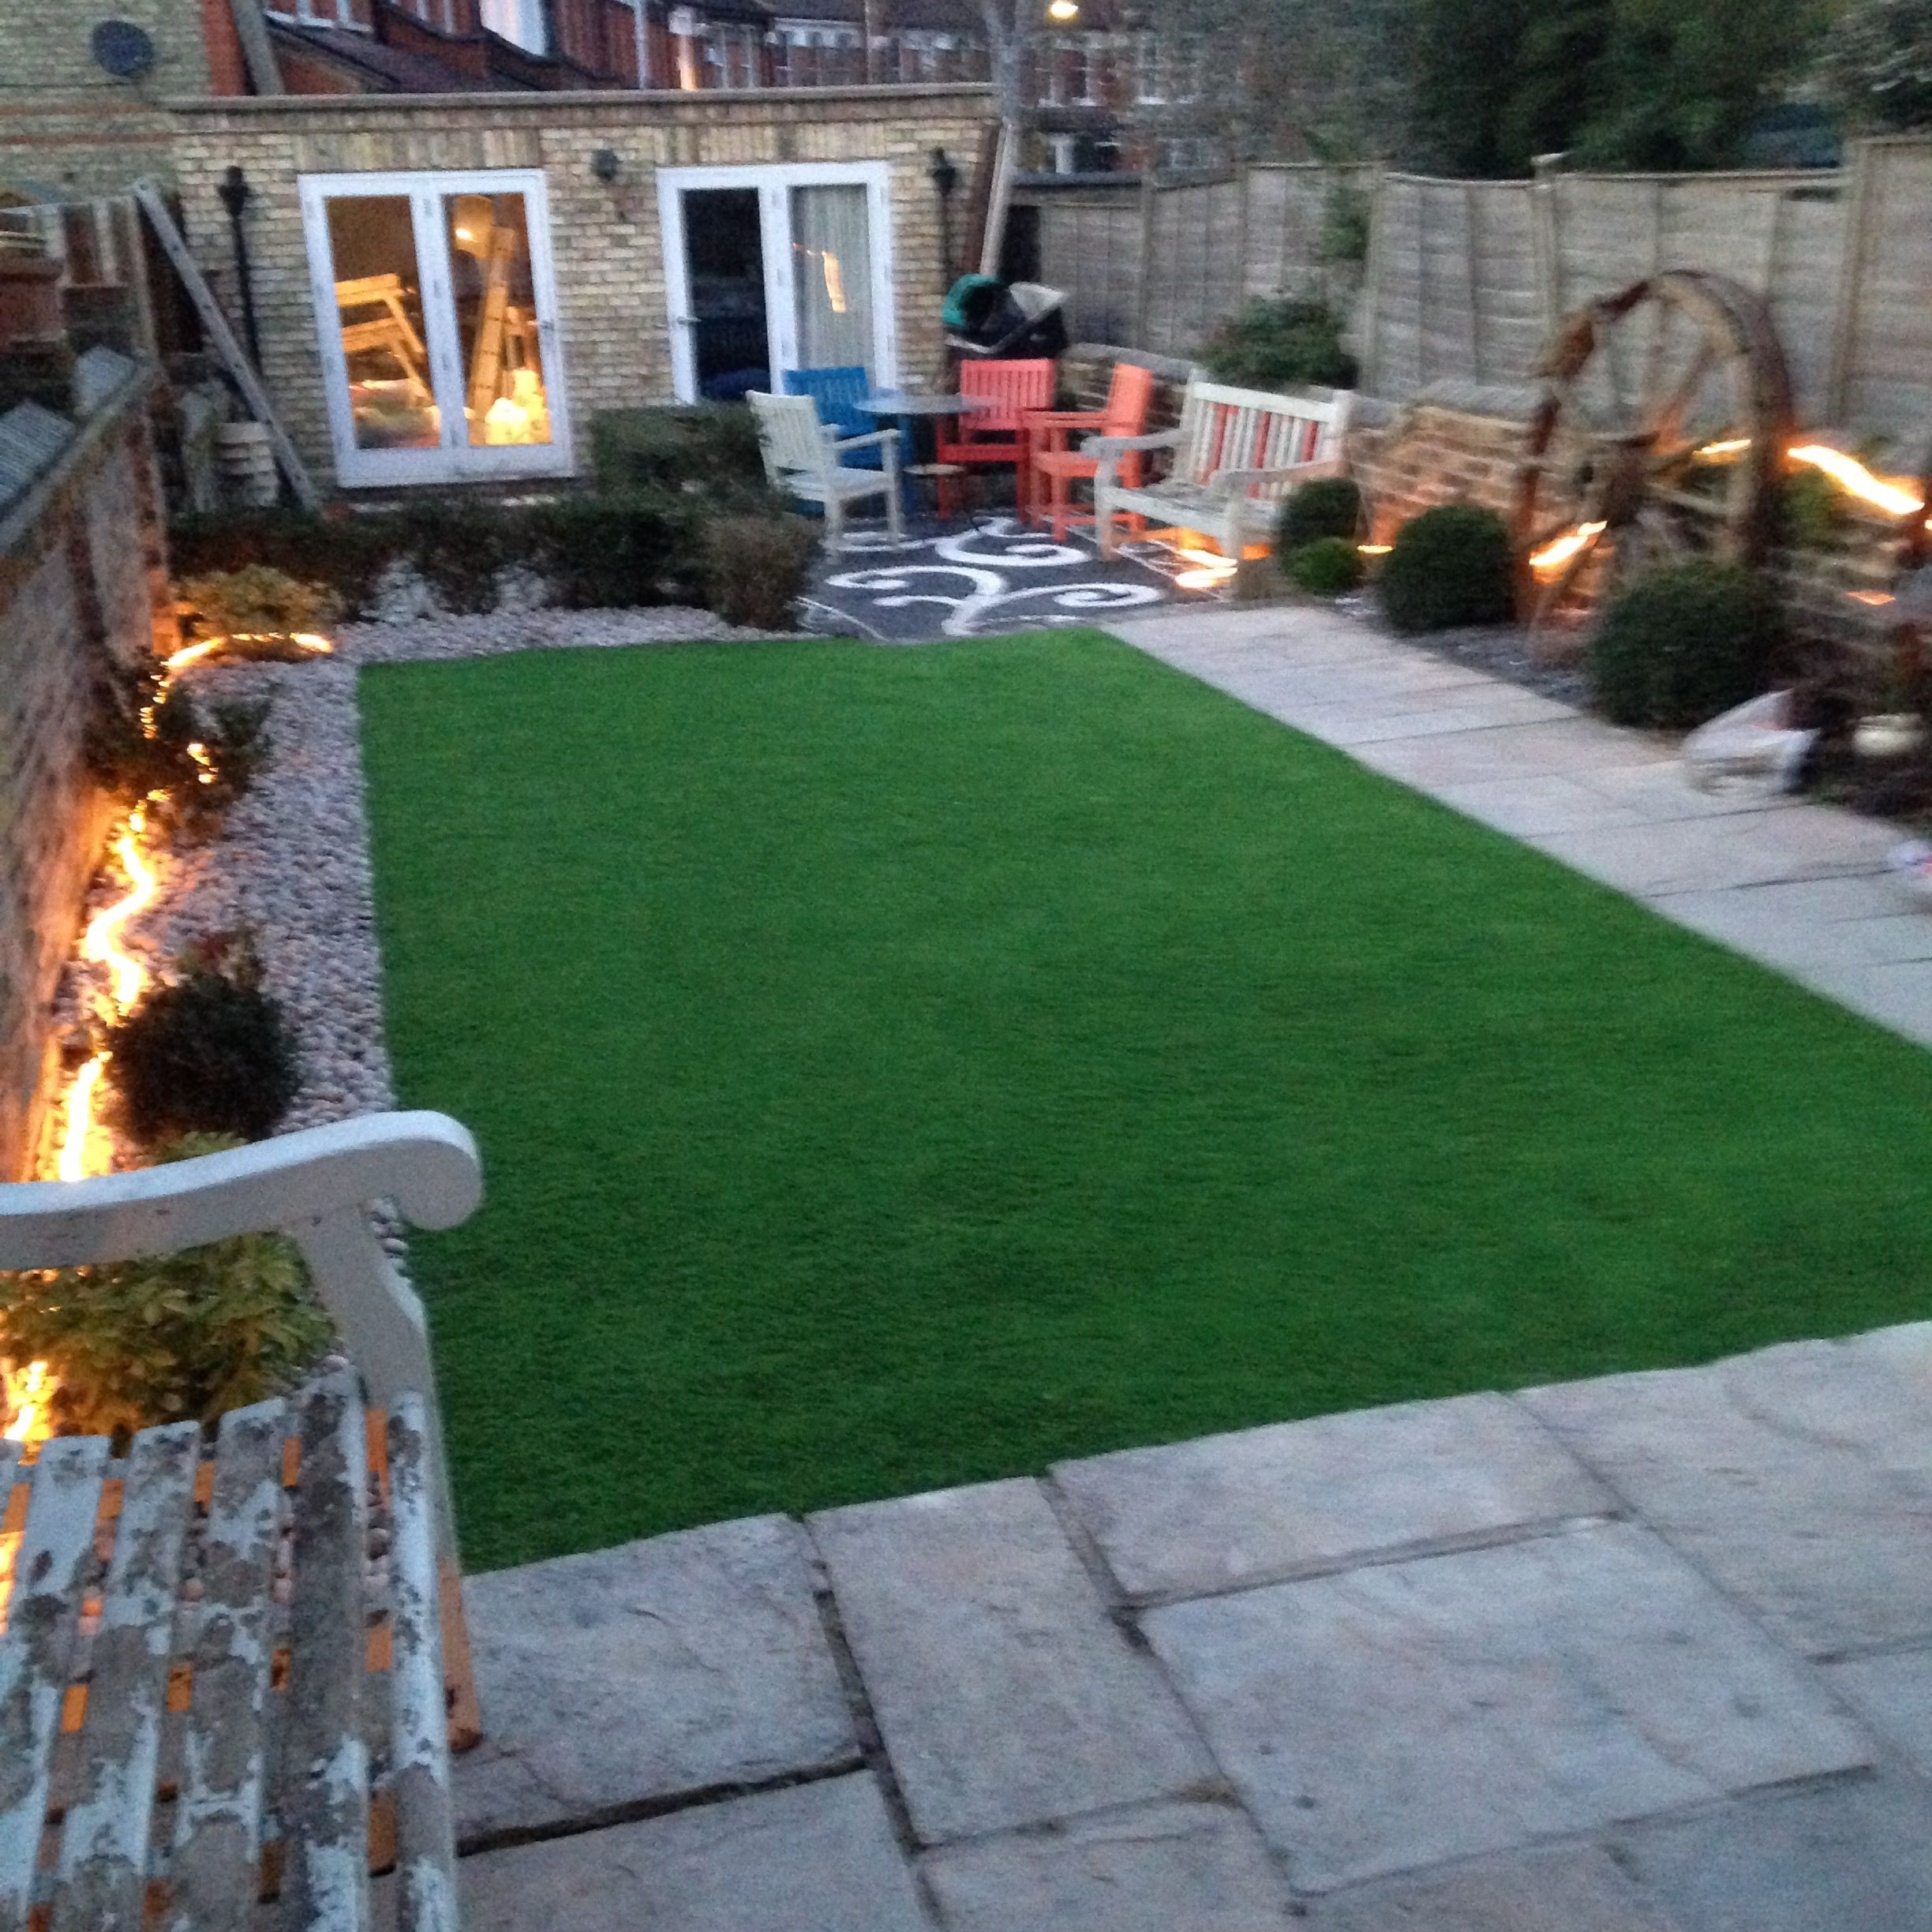 Pleasant Astroturf Garden Design  Garden  Pinterest  Gardens Astroturf  With Remarkable Astroturf Garden Design With Cute Garden Station Clock Also Mitcham Garden Centre In Addition Garden Office Pods And Garstang Garden Centre As Well As Botanical Gardens Dublin Additionally Pancake Manor Garden City From Pinterestcom With   Remarkable Astroturf Garden Design  Garden  Pinterest  Gardens Astroturf  With Cute Astroturf Garden Design And Pleasant Garden Station Clock Also Mitcham Garden Centre In Addition Garden Office Pods From Pinterestcom